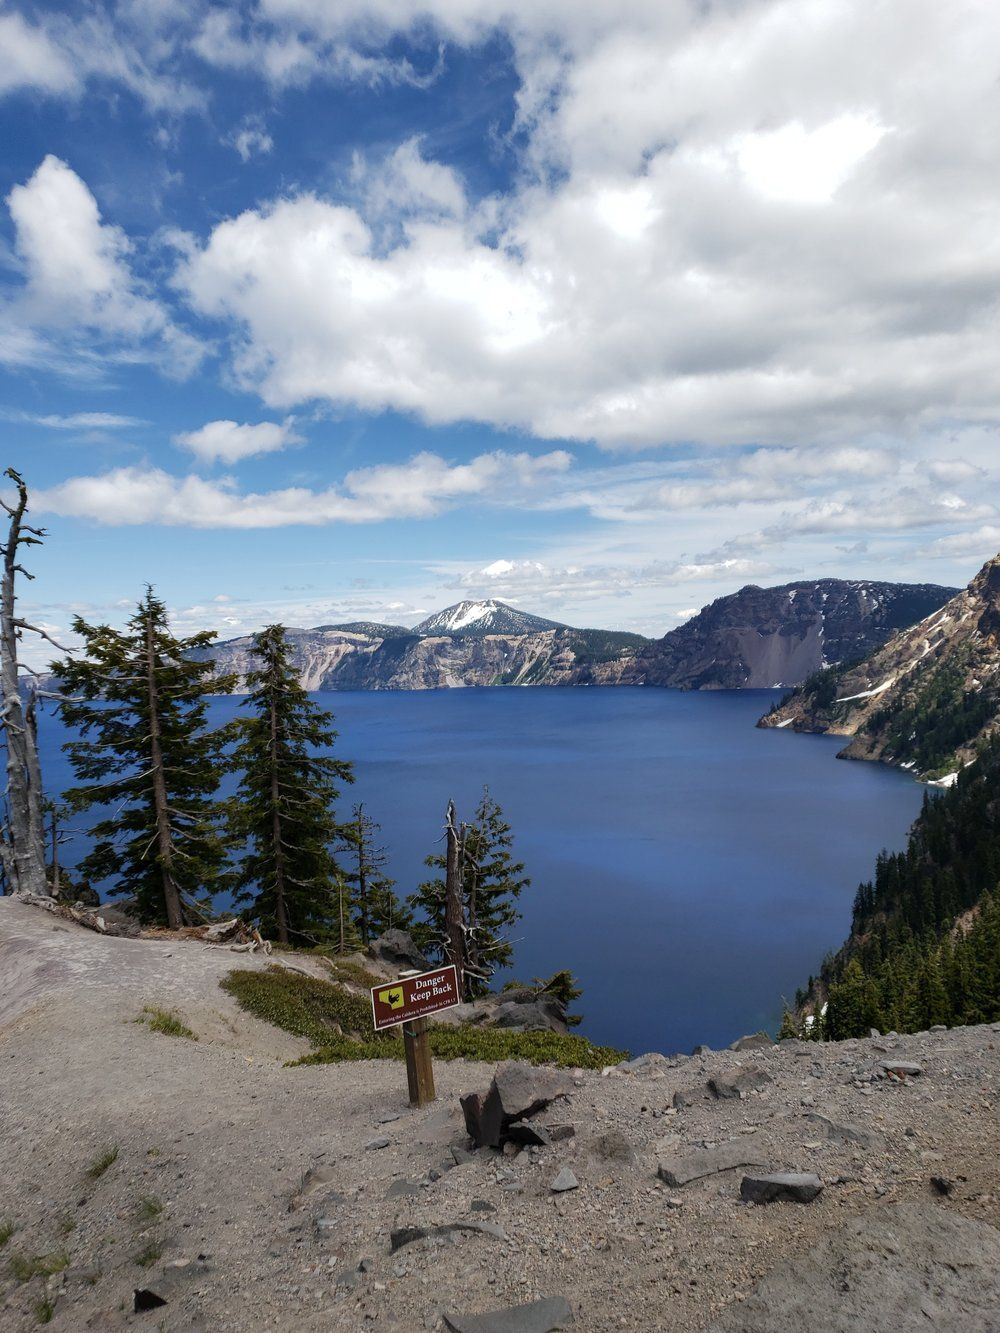 The rim drive - Crater lake national park #craterlakenationalpark The rim drive - Crater lake national park #craterlakenationalpark